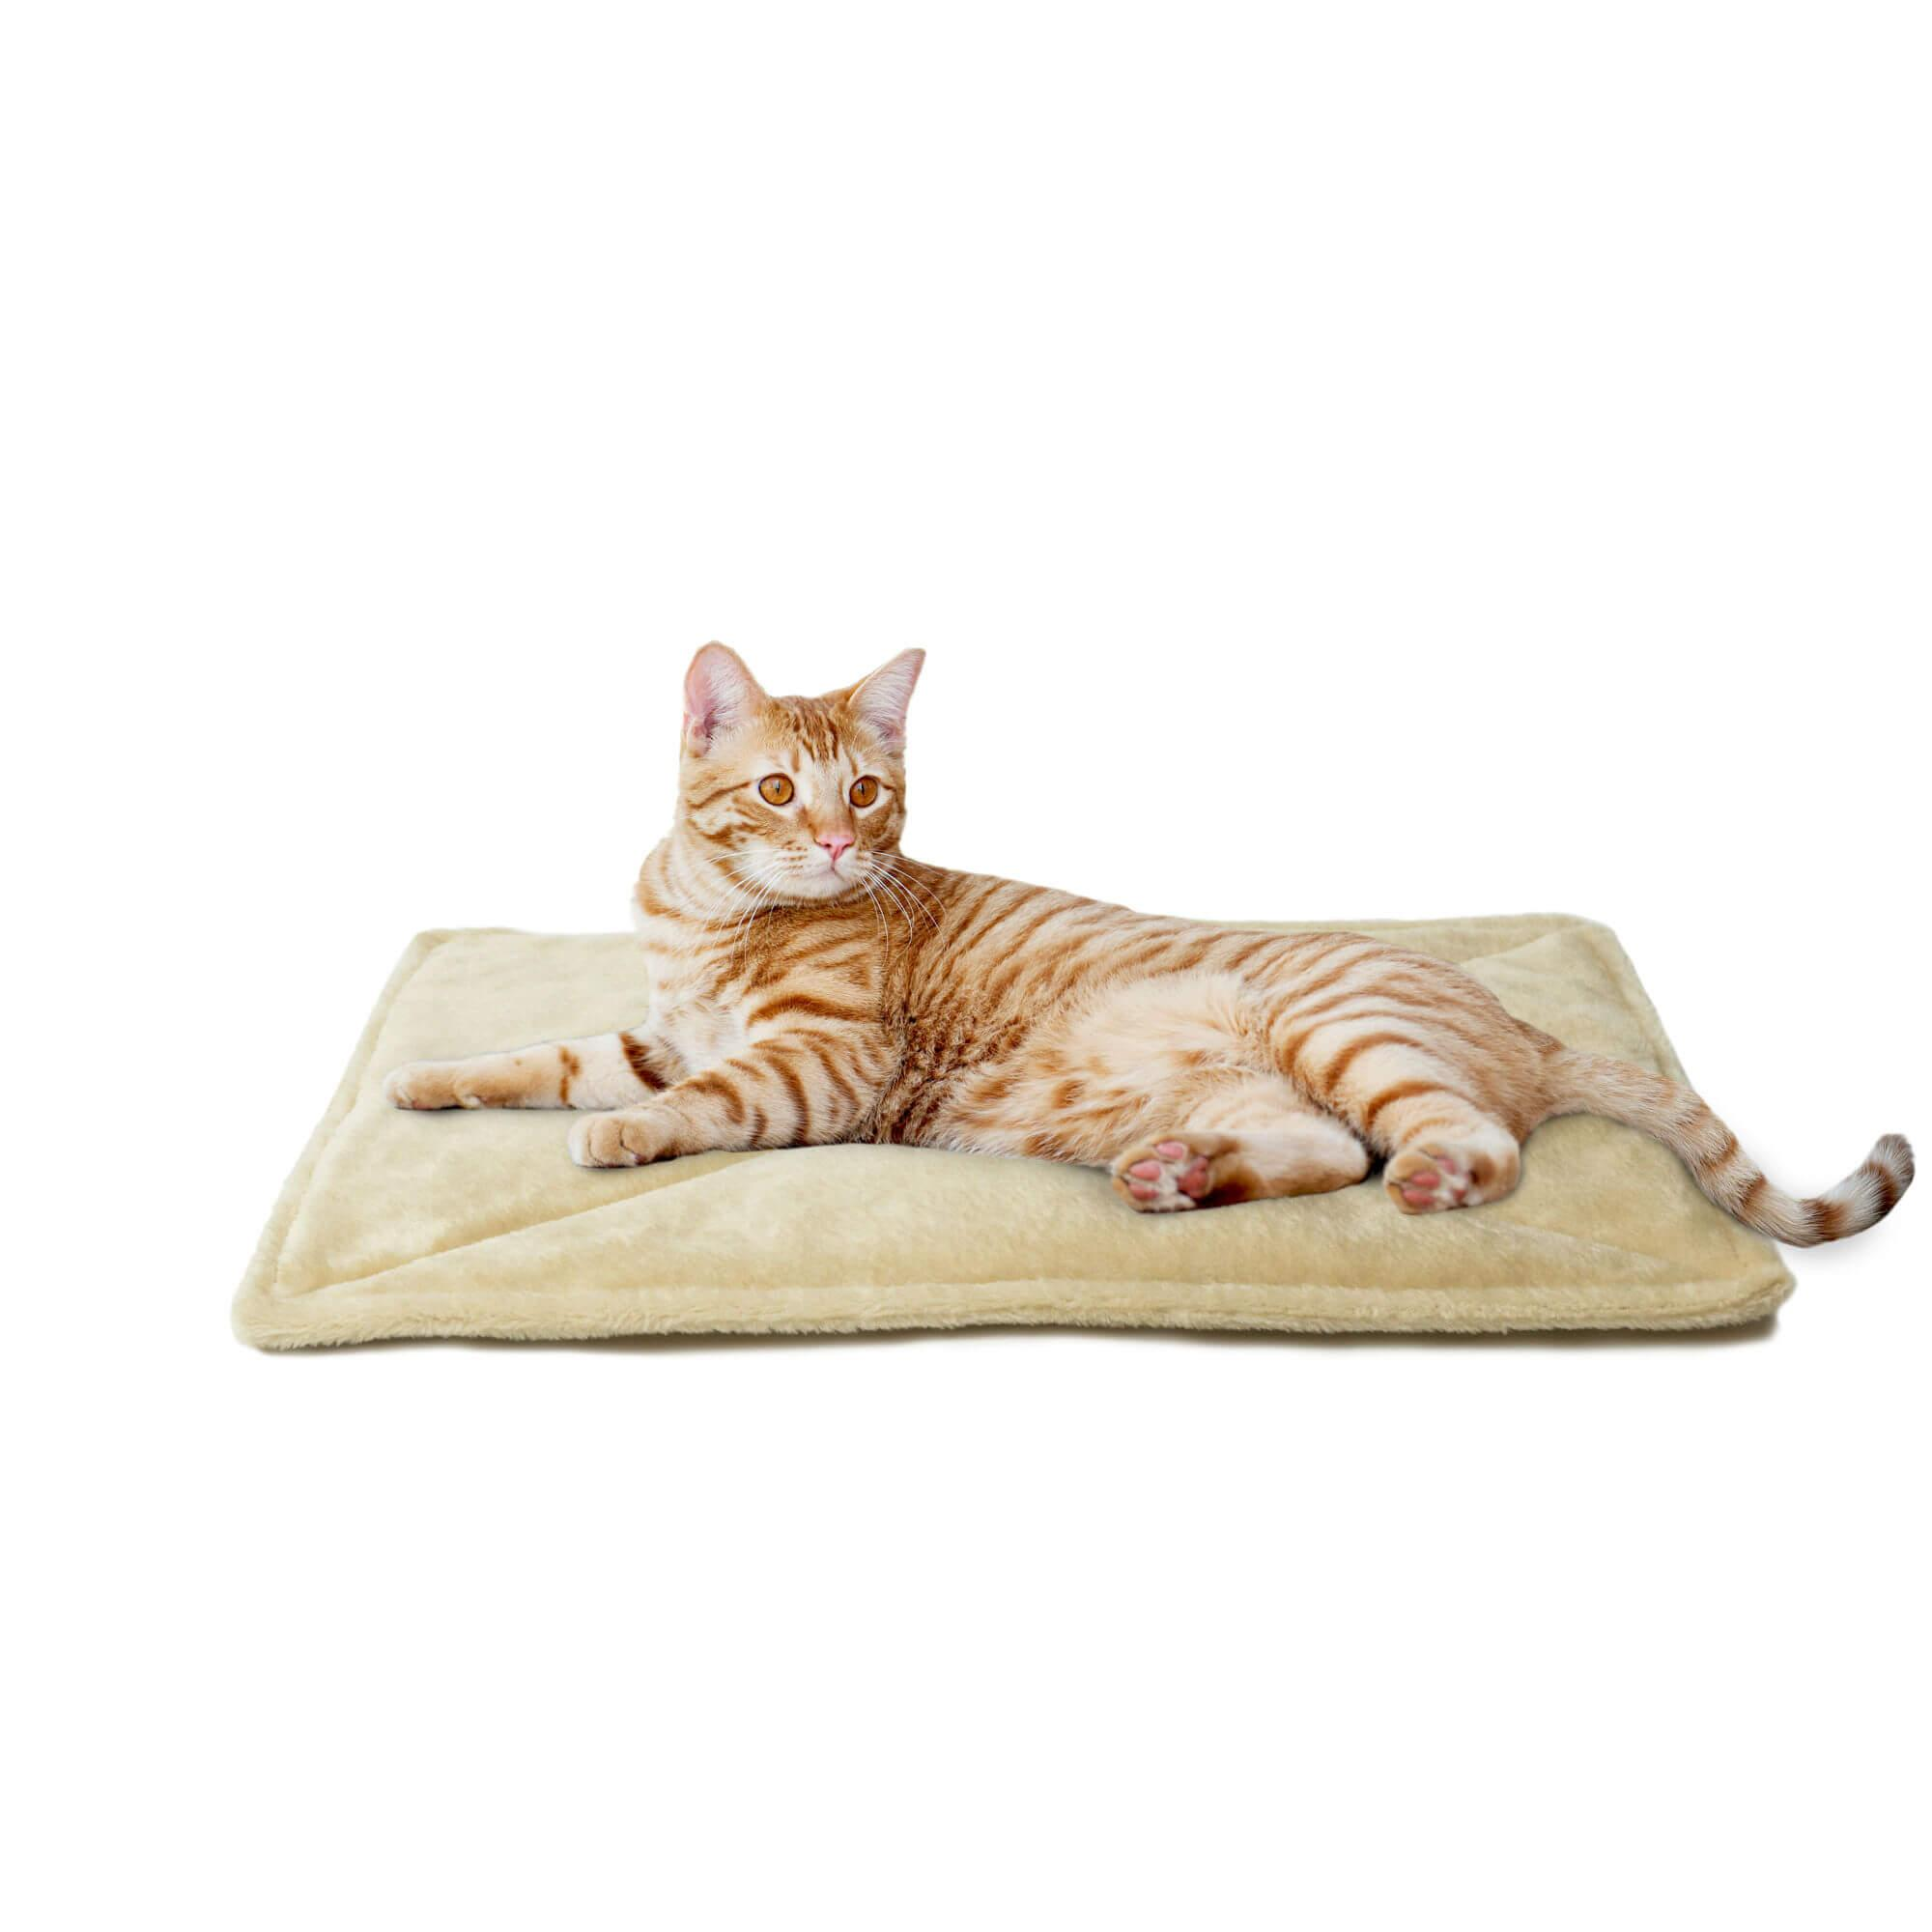 ThermaNAP Faux Fur Self-Warming Pet Mat - Cream